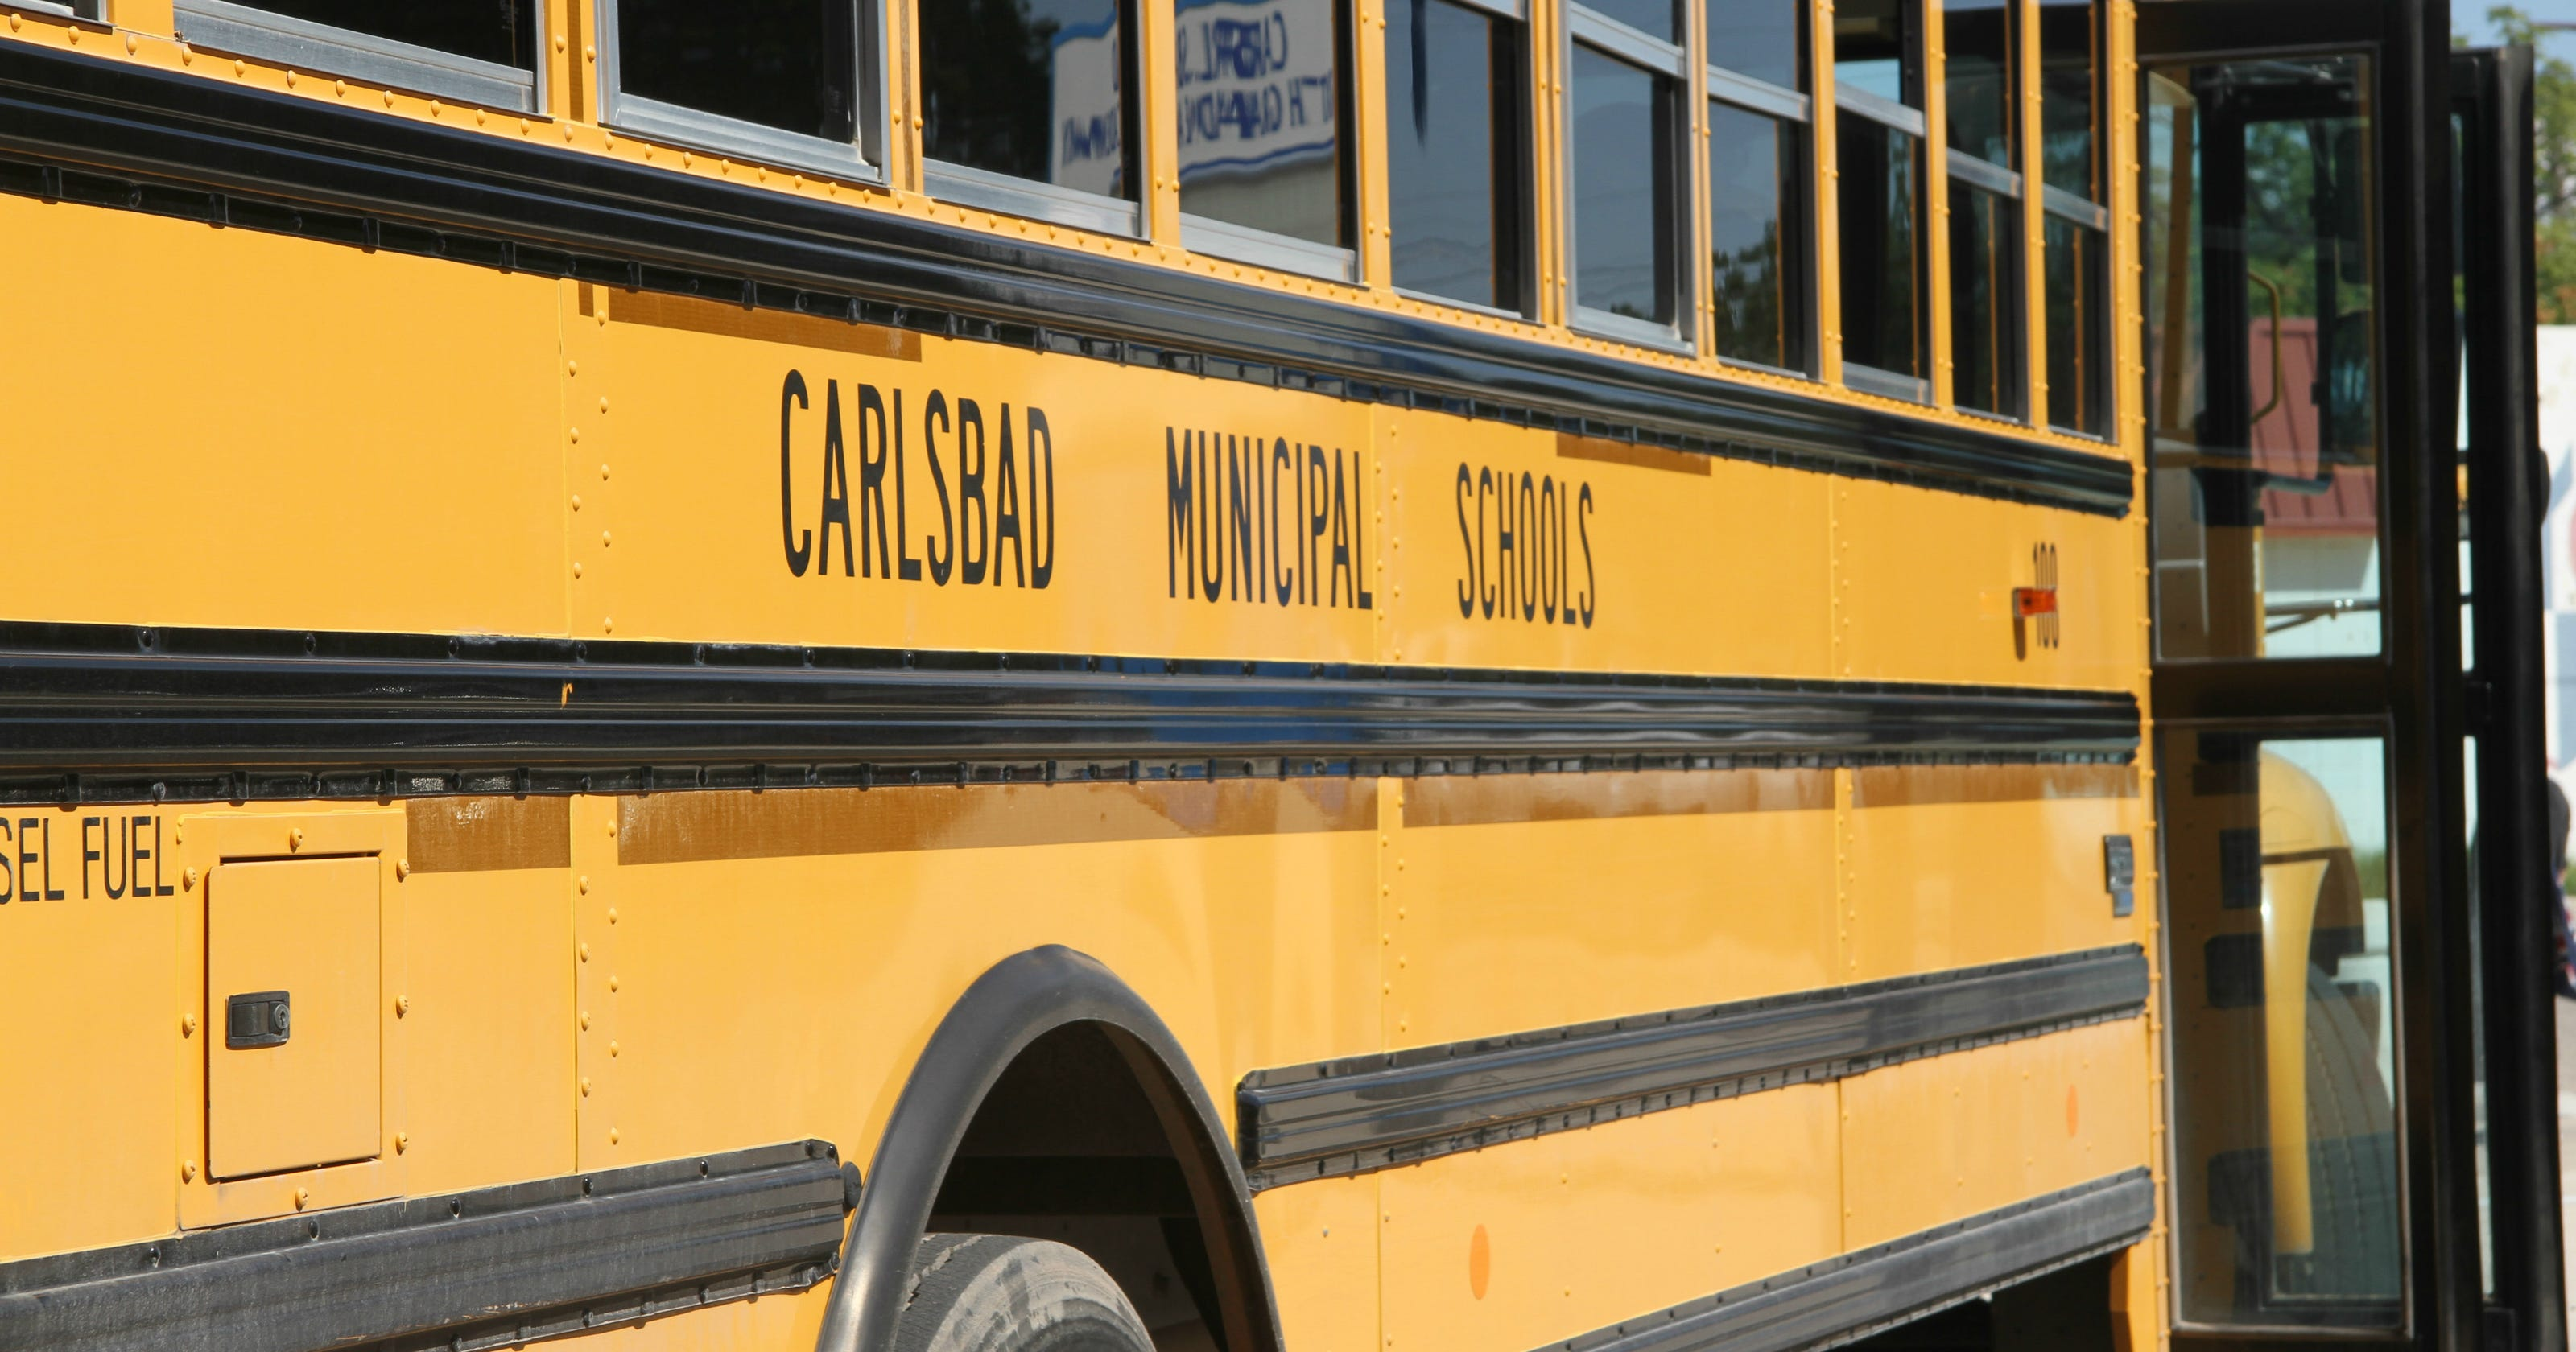 Carlsbad school bus service: how does it work?